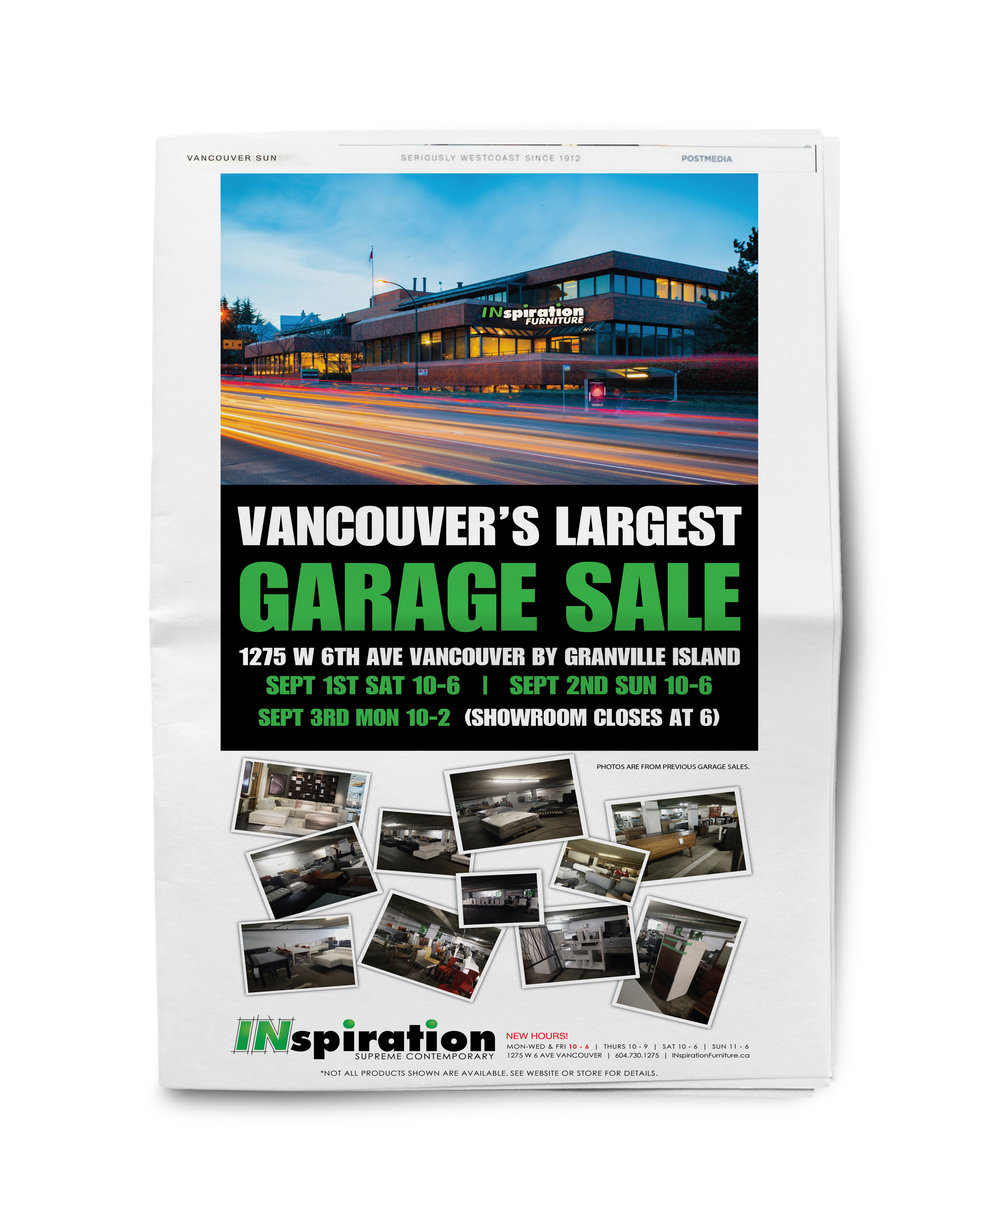 INspiration_Vancouver_Newspaper26.jpg